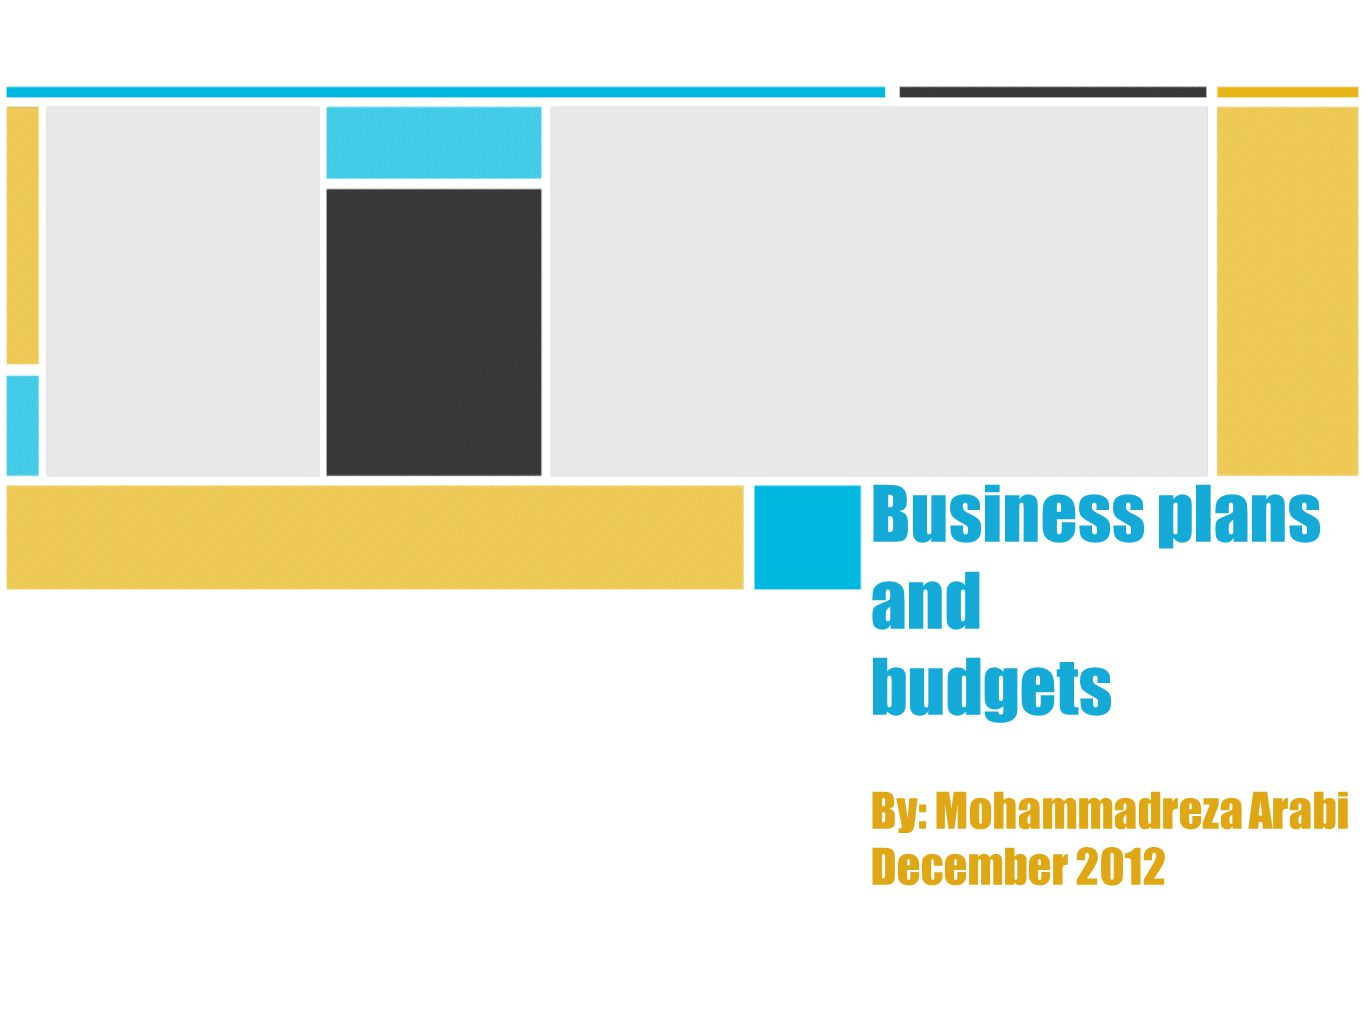 Business plans and budgets By: Mohammadreza Arabi December 2012